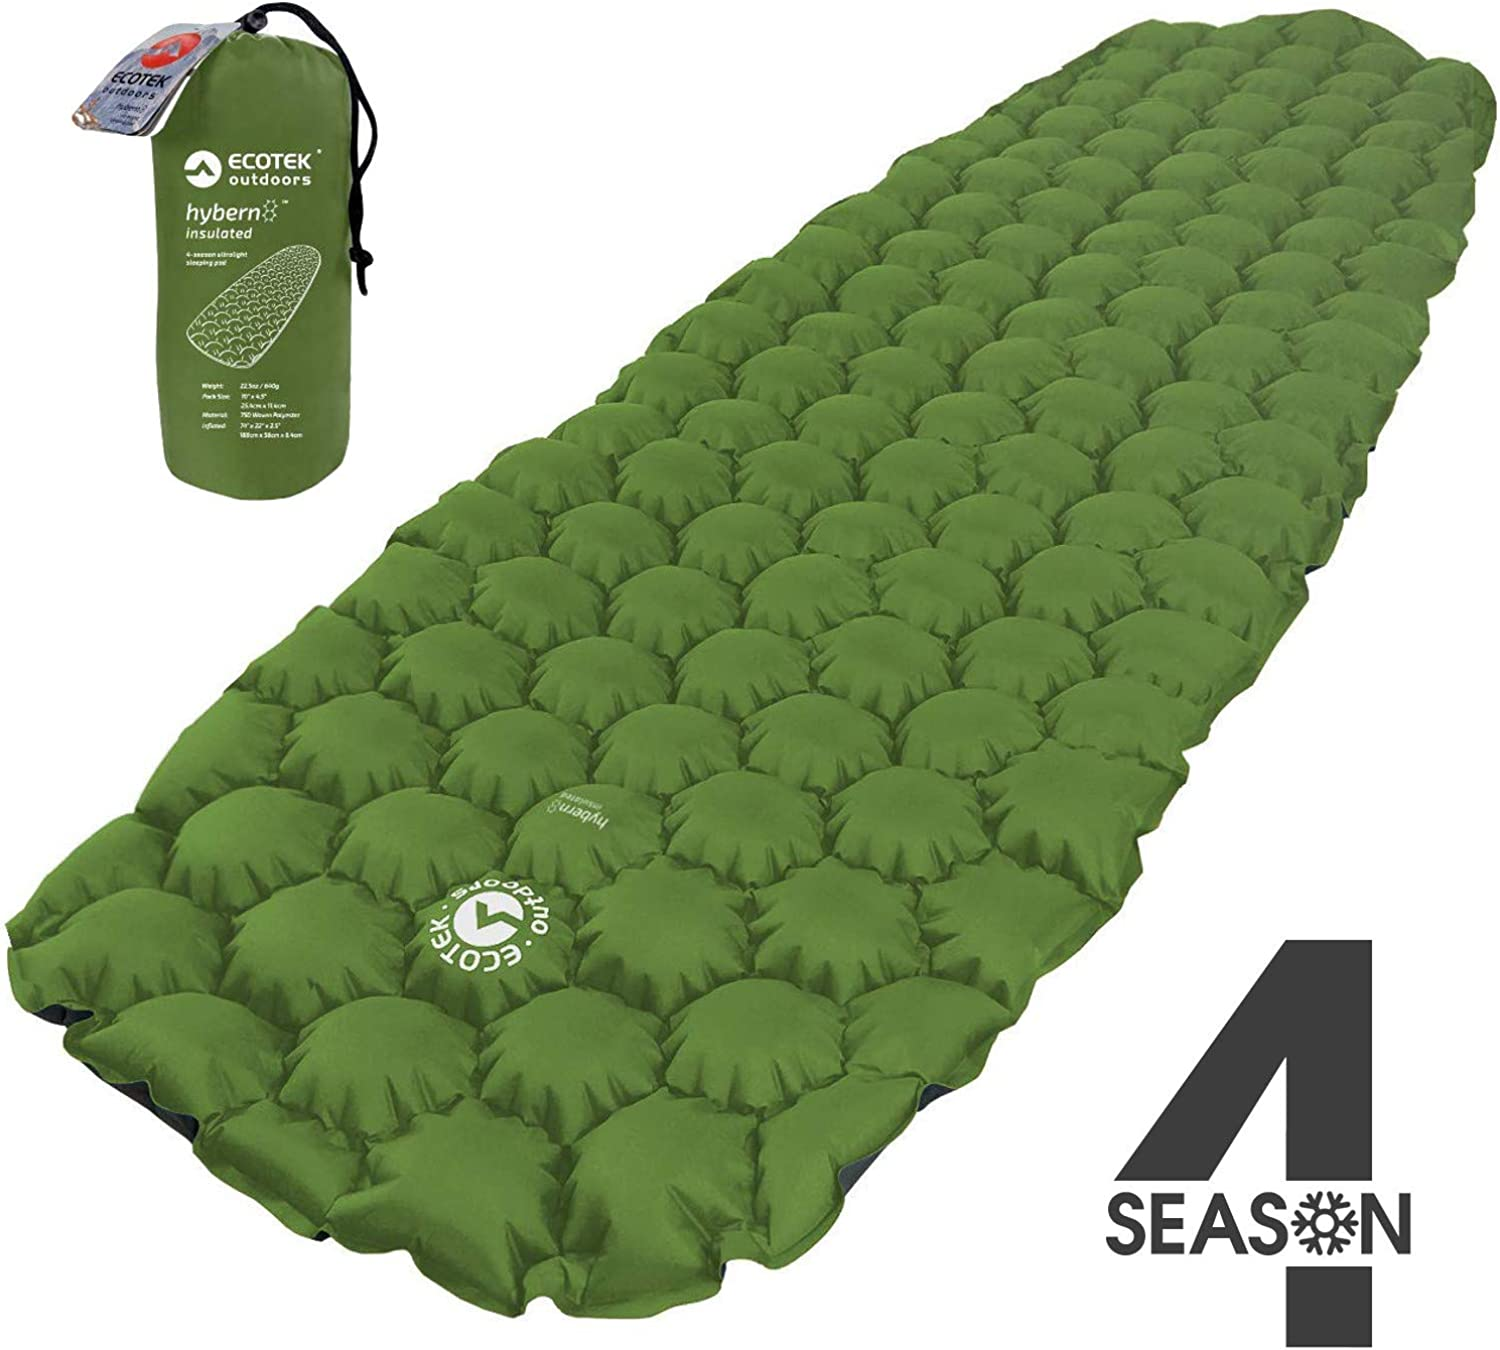 ECOTEK Outdoors Insulated Hybern8 4 Season Ultralight Inflatable Sleeping Pad with Contoured FlexCell Design – Easy, Comfortable, Light, Durable, Hammock Approved – Sub Zero Temp Rating